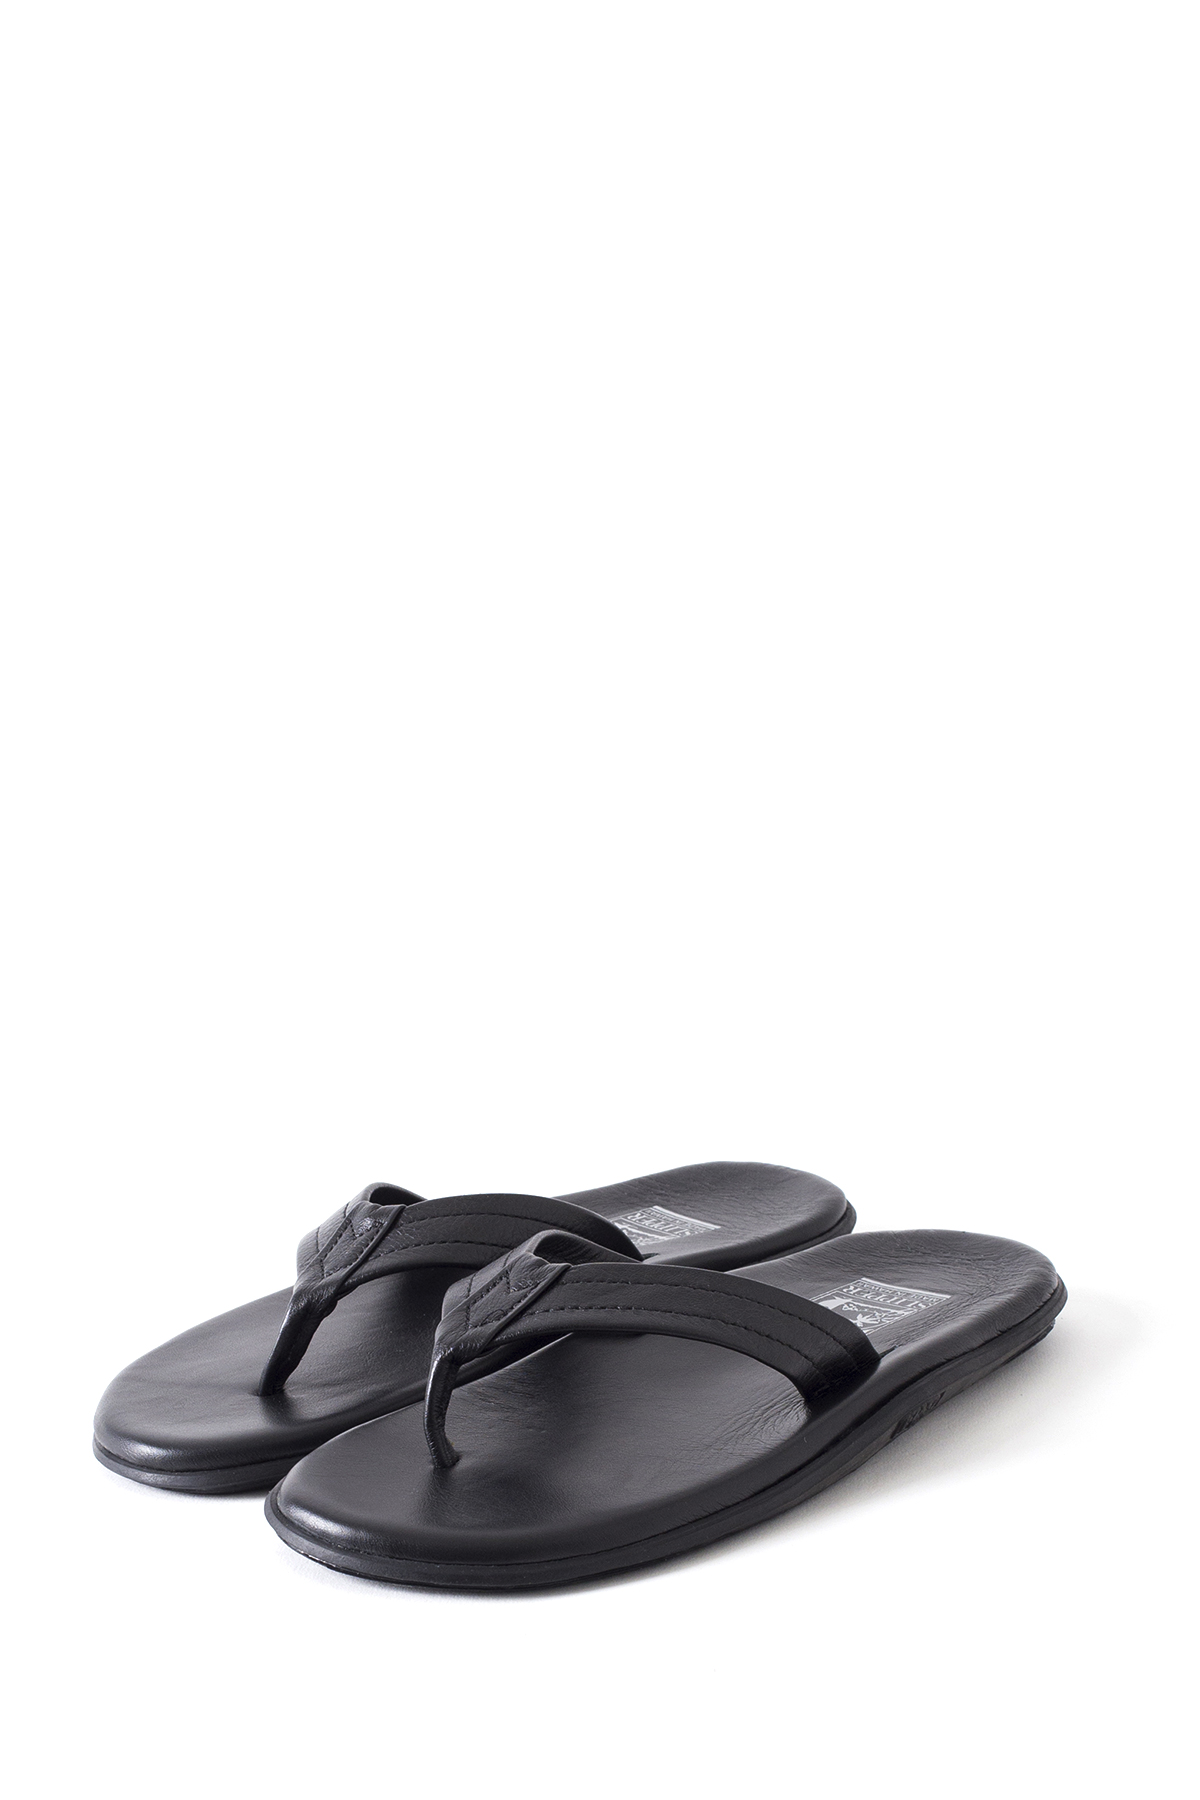 ISLAND SLIPPER : PB202 (Atras / Black)